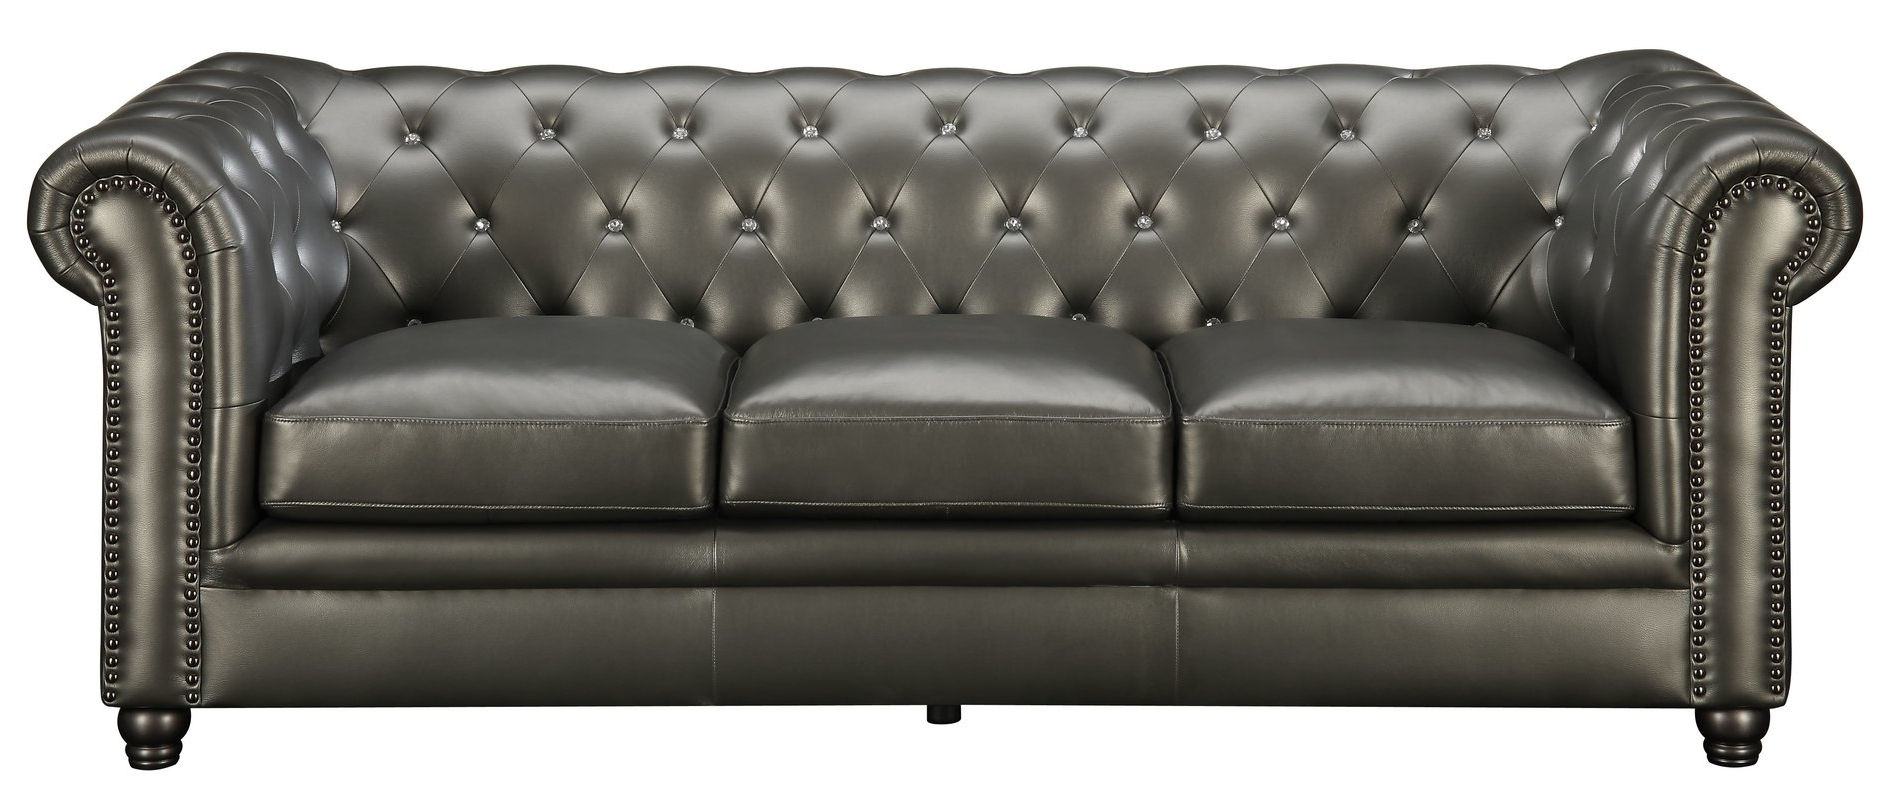 Wayfair For Trendy Leather Chesterfield Sofas (View 17 of 20)